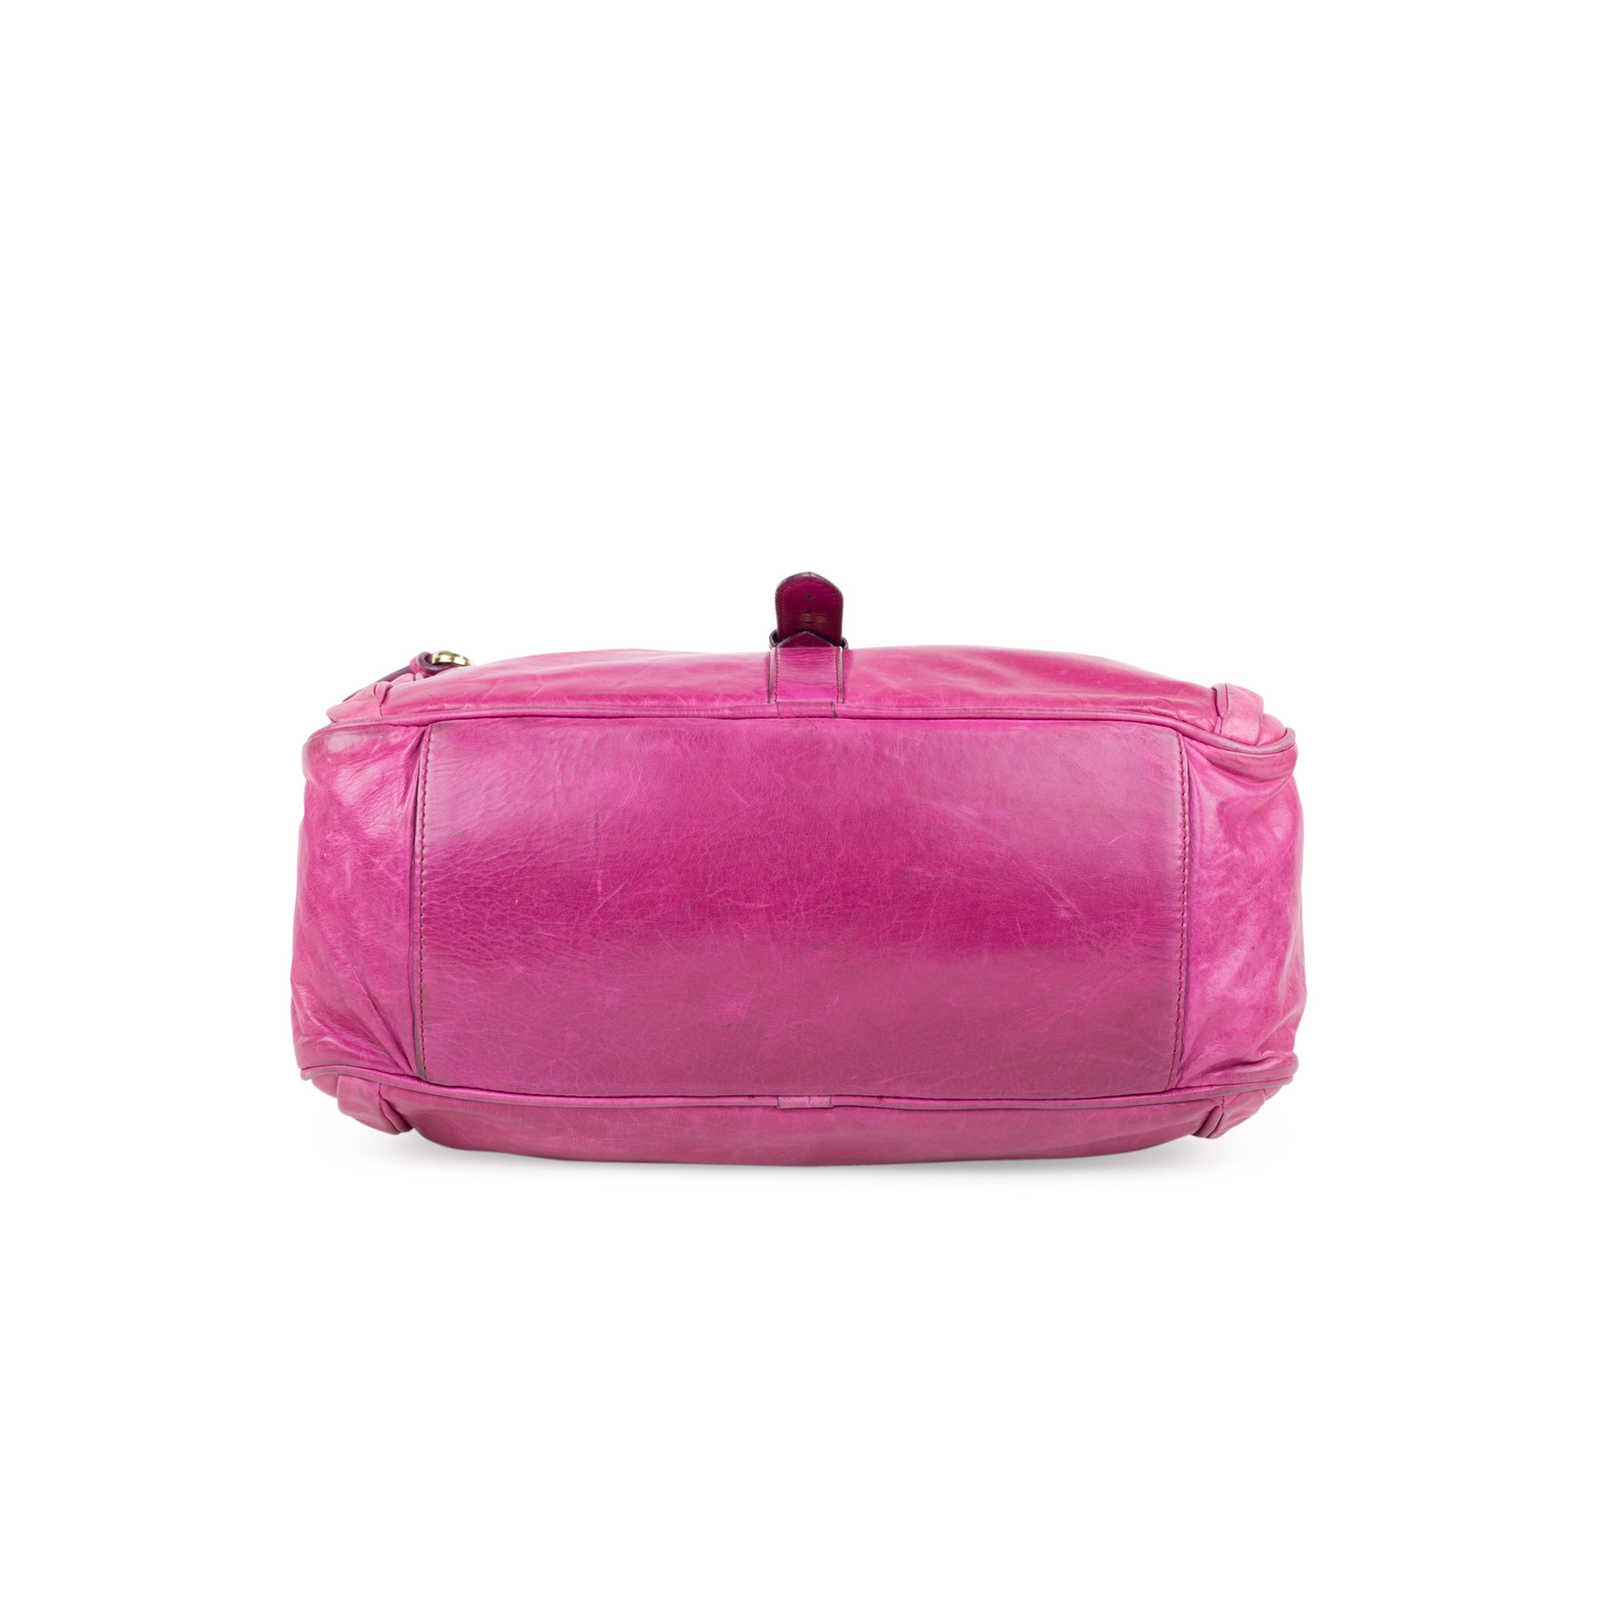 6607ca73c2 ... Authentic Second Hand Mulberry Fuchsia Mabel Shoulder Bag  (PSS-554-00008) ...